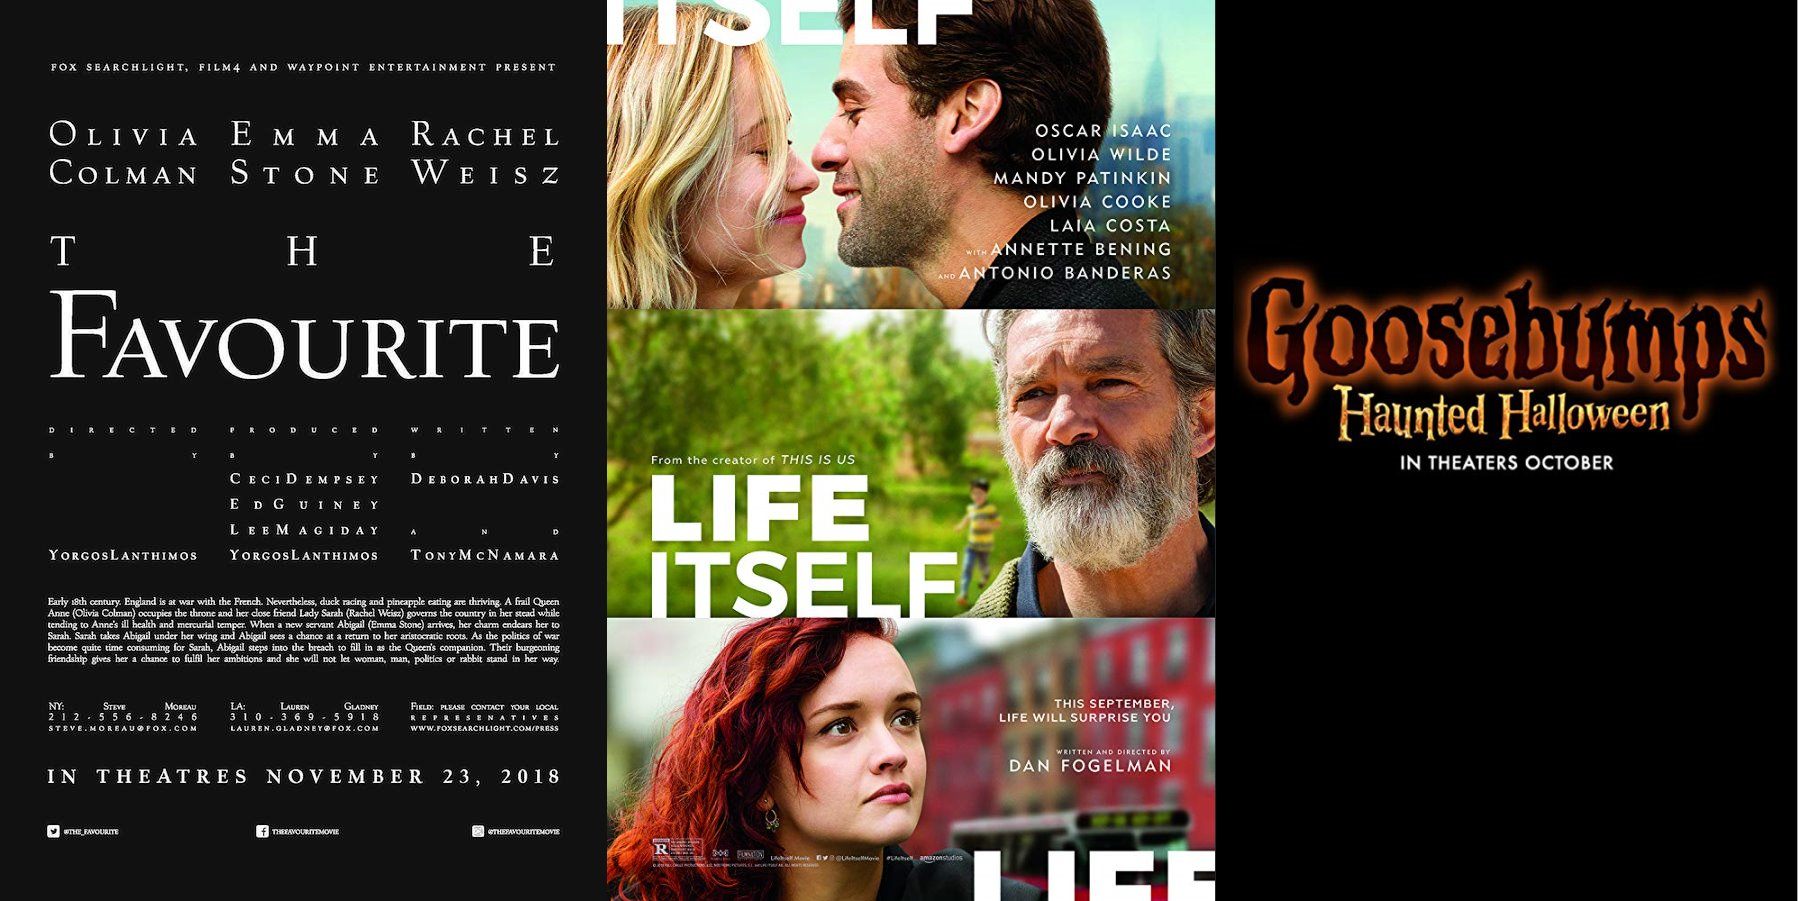 Trailer-Watchin' Wednesday: Life Itself, The Favourite, Goosebumps 2